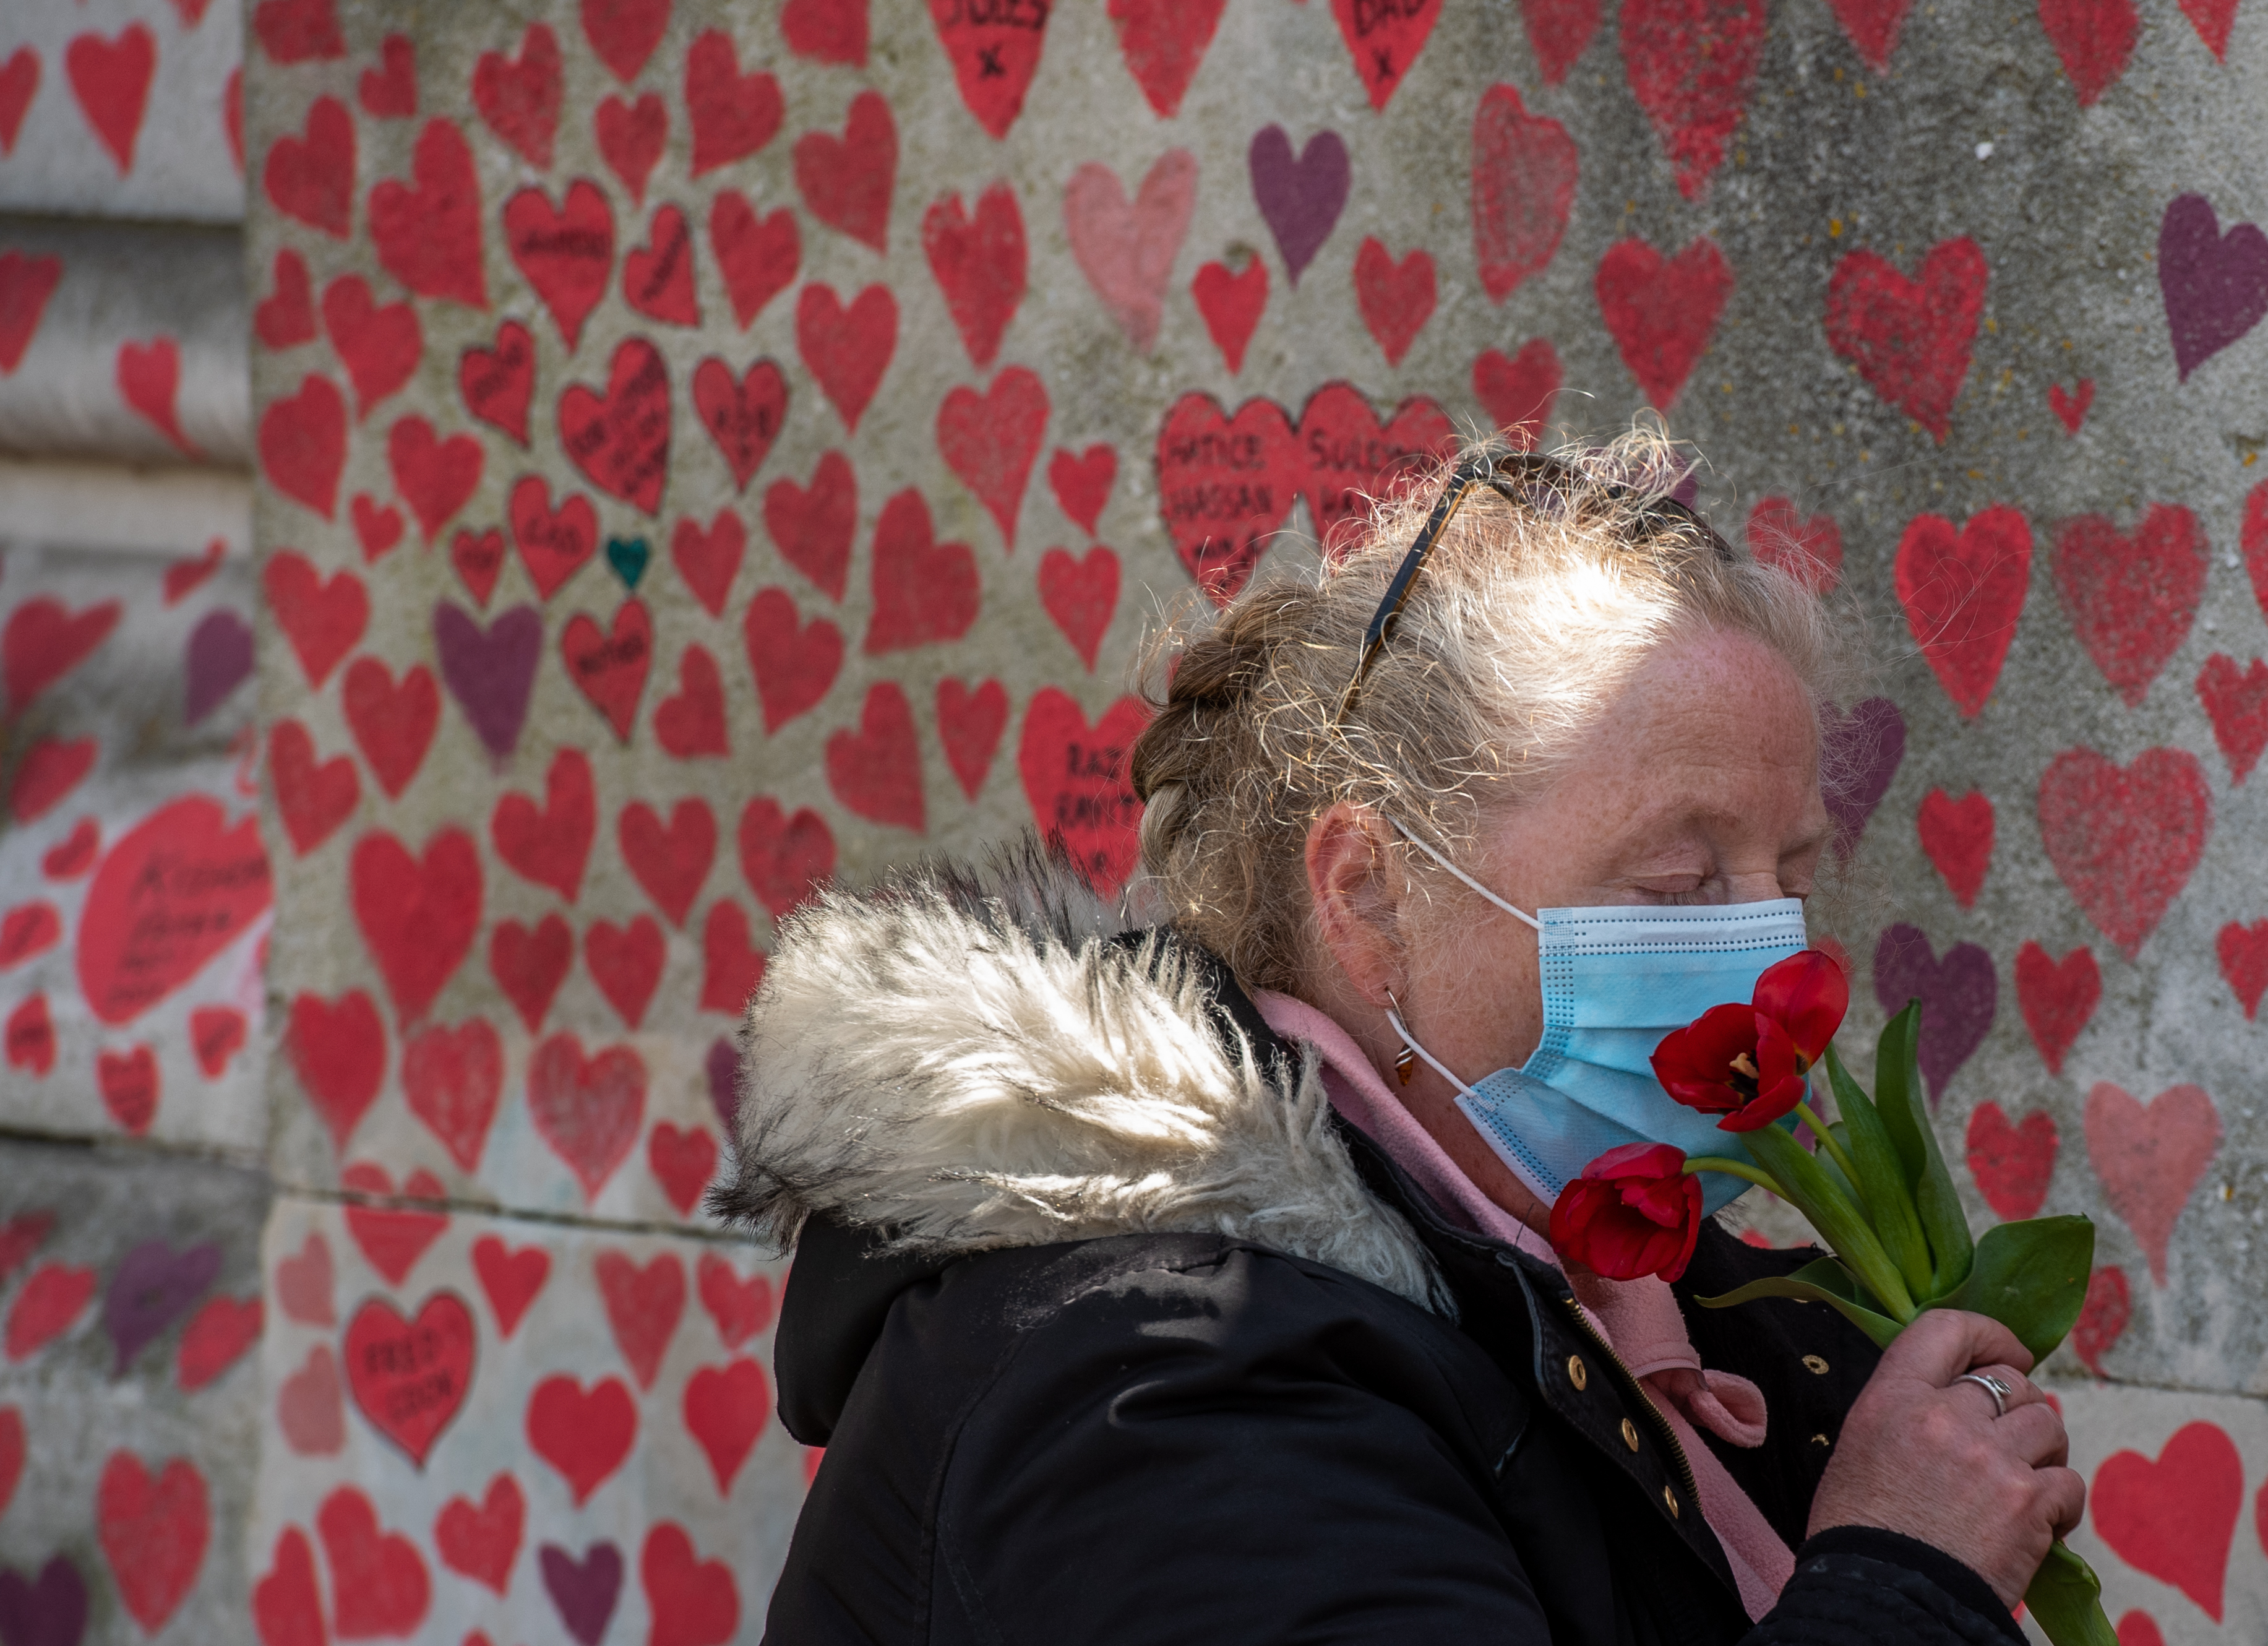 <p>LONDON, ENGLAND - APRIL 06: Cheryl Mayne smells tulips that she then leaves next to a heart she drew in memory of her brother Mark Sarnham who died from Covid-19 at the Covid-19 Memorial Wall that is nearing completion opposite Parliament on April 6, 2021, in London, England. Over the past week bereaved families have created a vast Covid-19 Memorial Wall, on the Embankment opposite the Houses of Parliament in Westminster, London. Painting individual red hearts for each of the lives lost to the virus, the group hopes to put personal stories at the heart of the Government's approach to learn lessons from the pandemic. Coronavirus is thought to be responsible for more than 145,000 deaths in the UK.   'This is an outpouring of love,' said Matt Fowler, co-founder of Covid-19 Bereaved Families for Justice, who lost his dad Ian, 56, to the virus. 'Each heart is individually hand-painted - utterly unique, just like the loved ones we have lost. And like the scale of our collective loss, this memorial is going to be enormous. We think it will take several days to complete and it's going to stretch for more than half a kilometre. We know not everyone can come down here to see it, but we really hope this can become a focal point for remembering this national tragedy. We have placed it at the heart of our capital so that the Government never loses sight of the personal stories at the heart of all this.' The group has committed to restoring the site at the appropriate time. Those taking part are socially-distanced in no more than groups of six on given sections of walls. (Photo by Chris J Ratcliffe For Covid-19 Bereaved Families For Justice/Getty Images)</p>